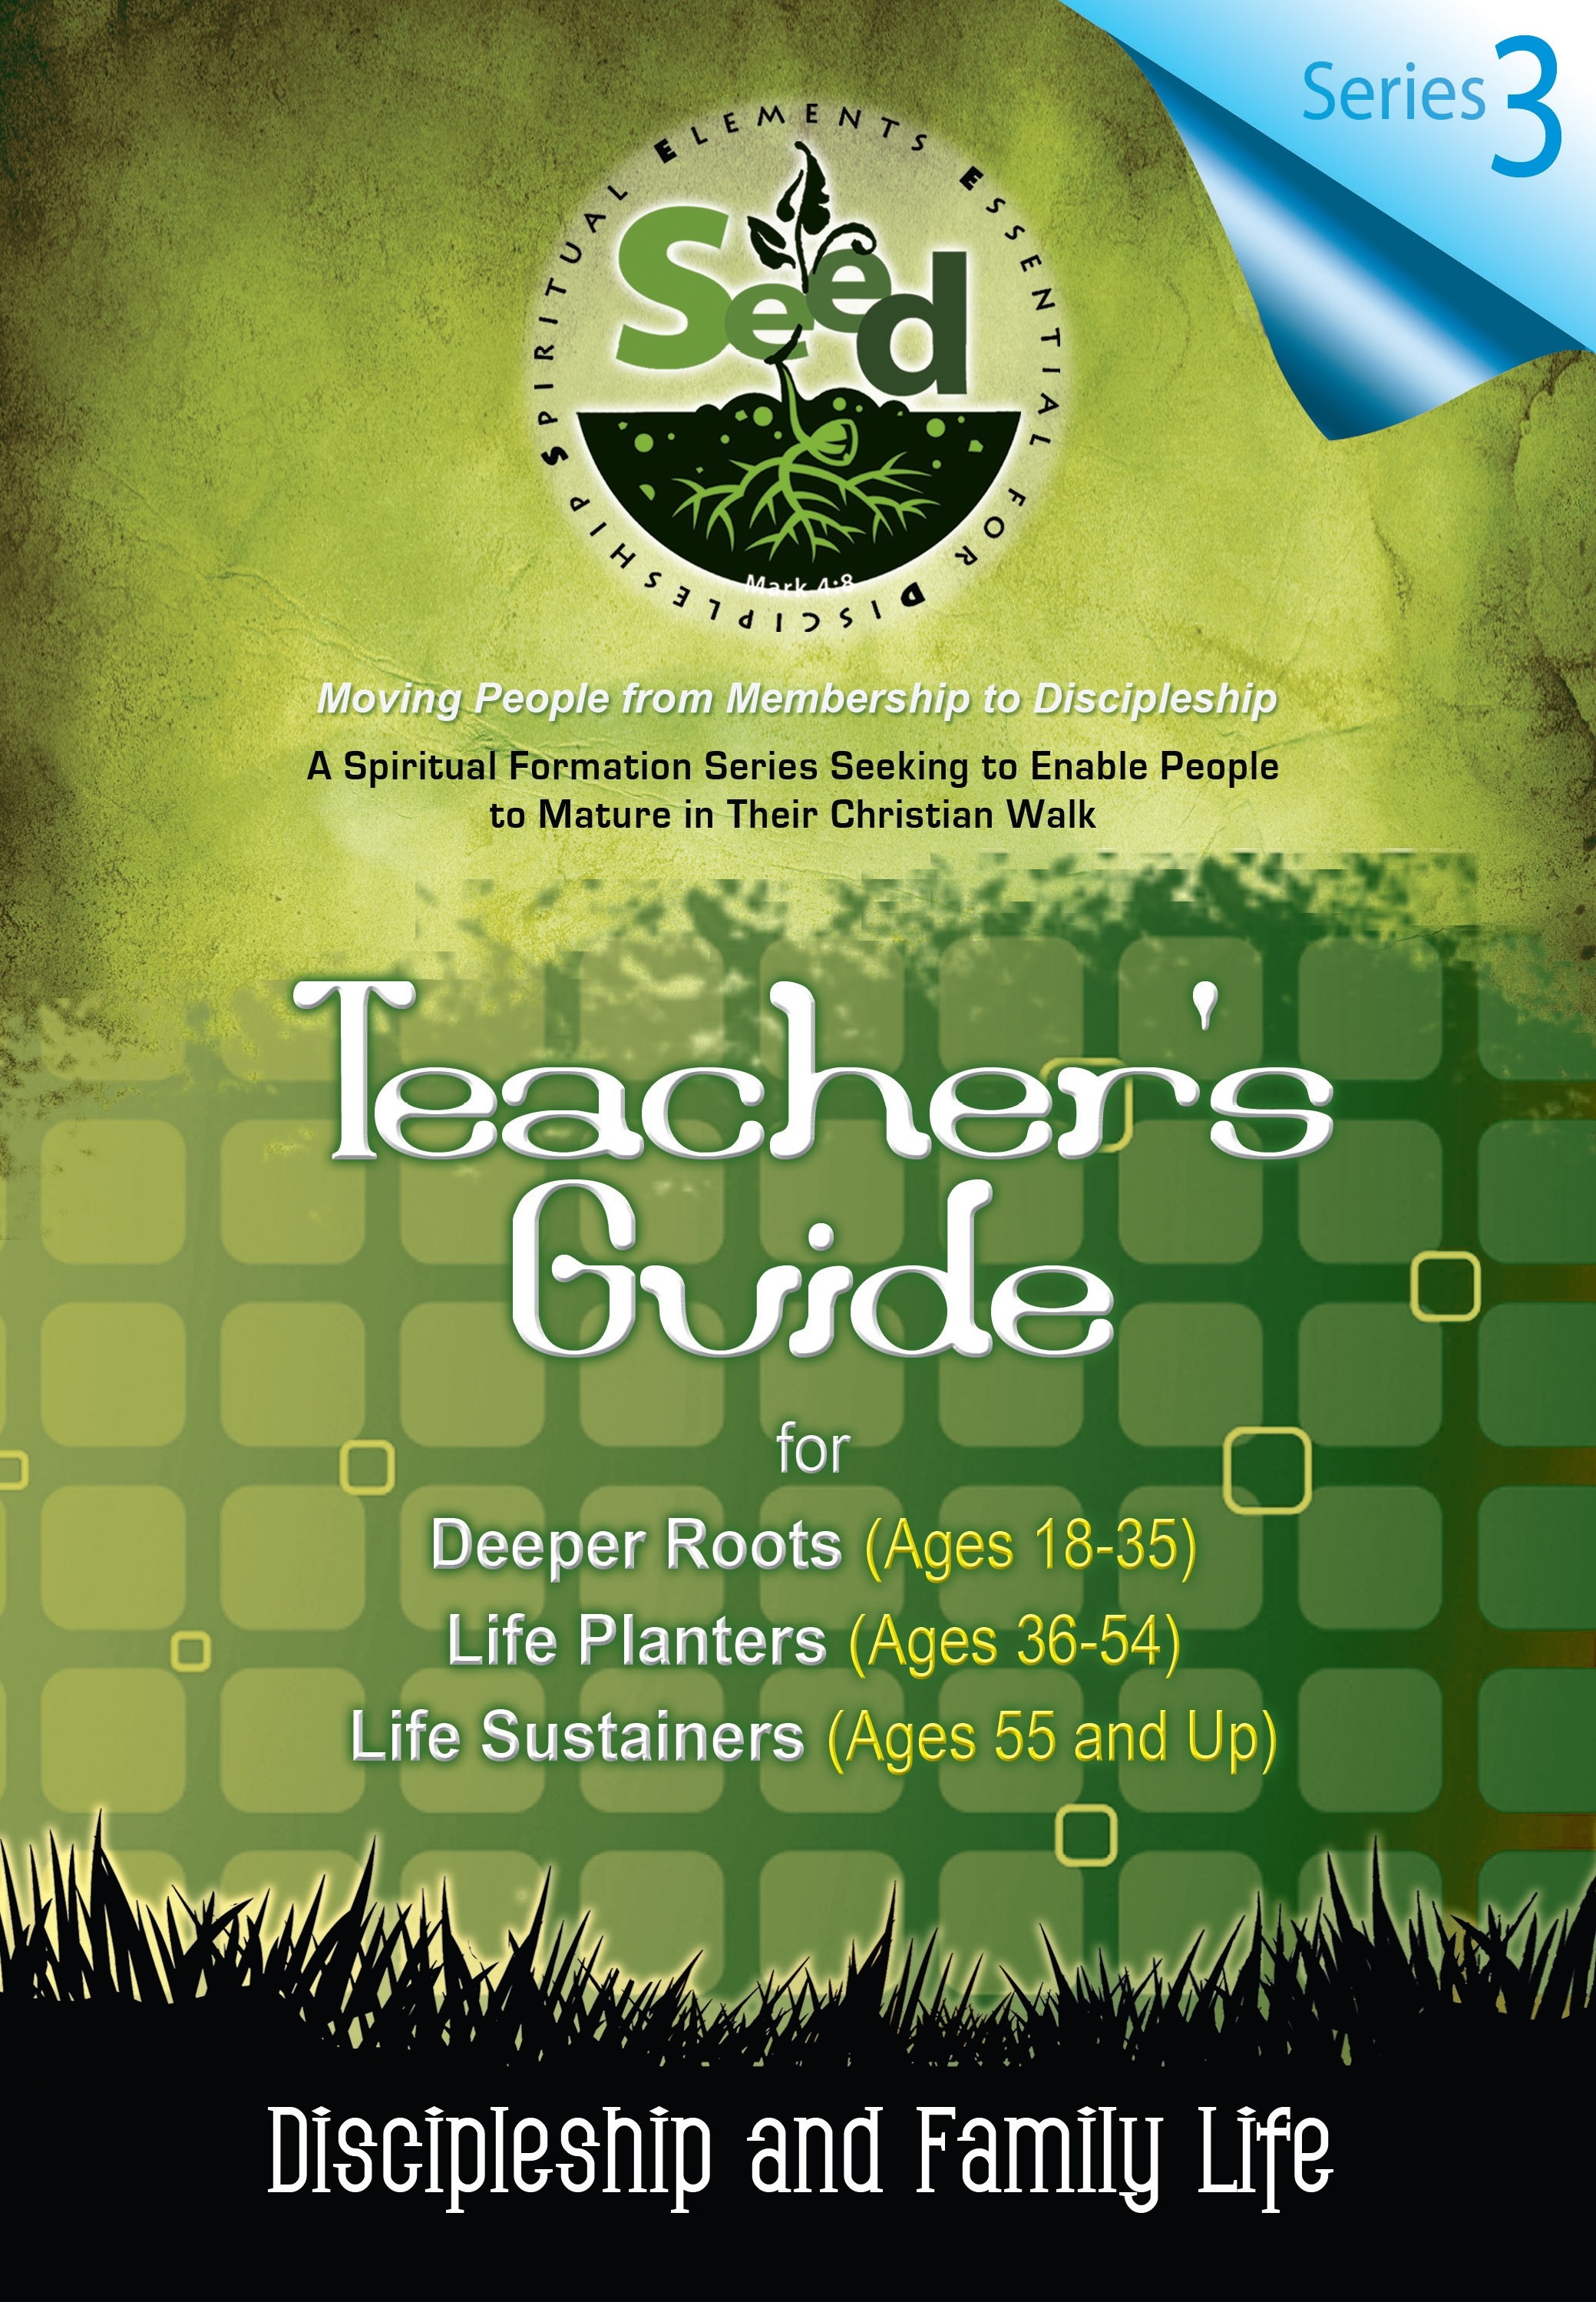 SEED Adult Teacher's Guide: Series 3: Discipleship and Family Life